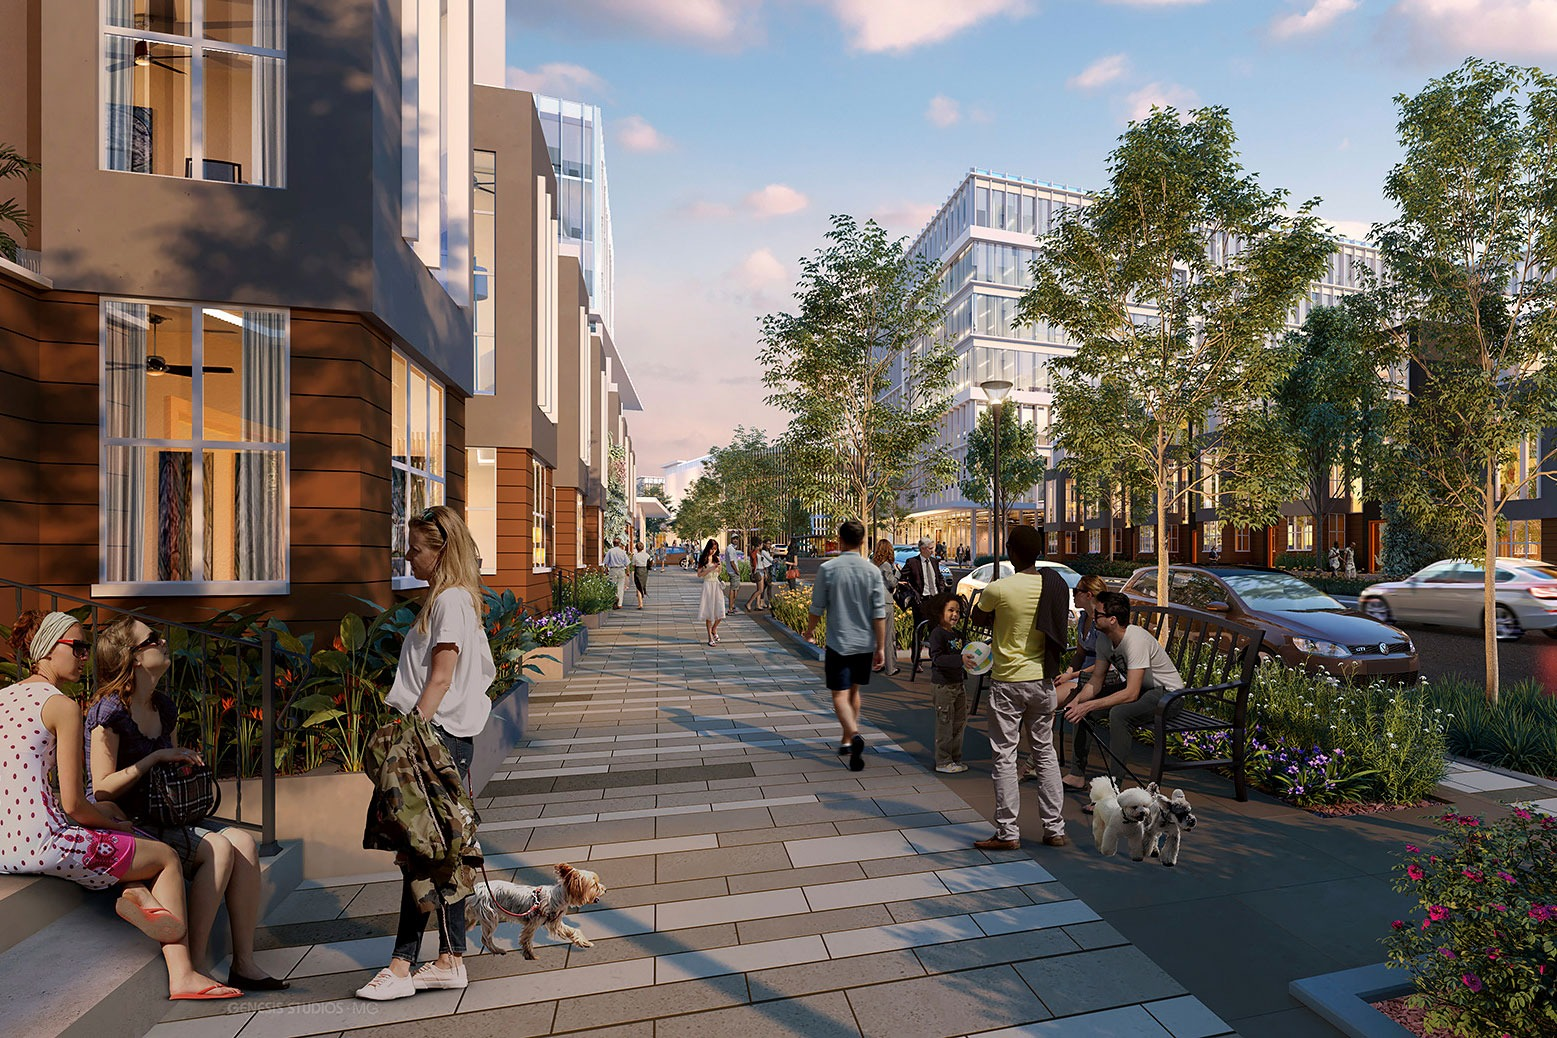 Design for Walkability Makes Cities Healthy and Friendly